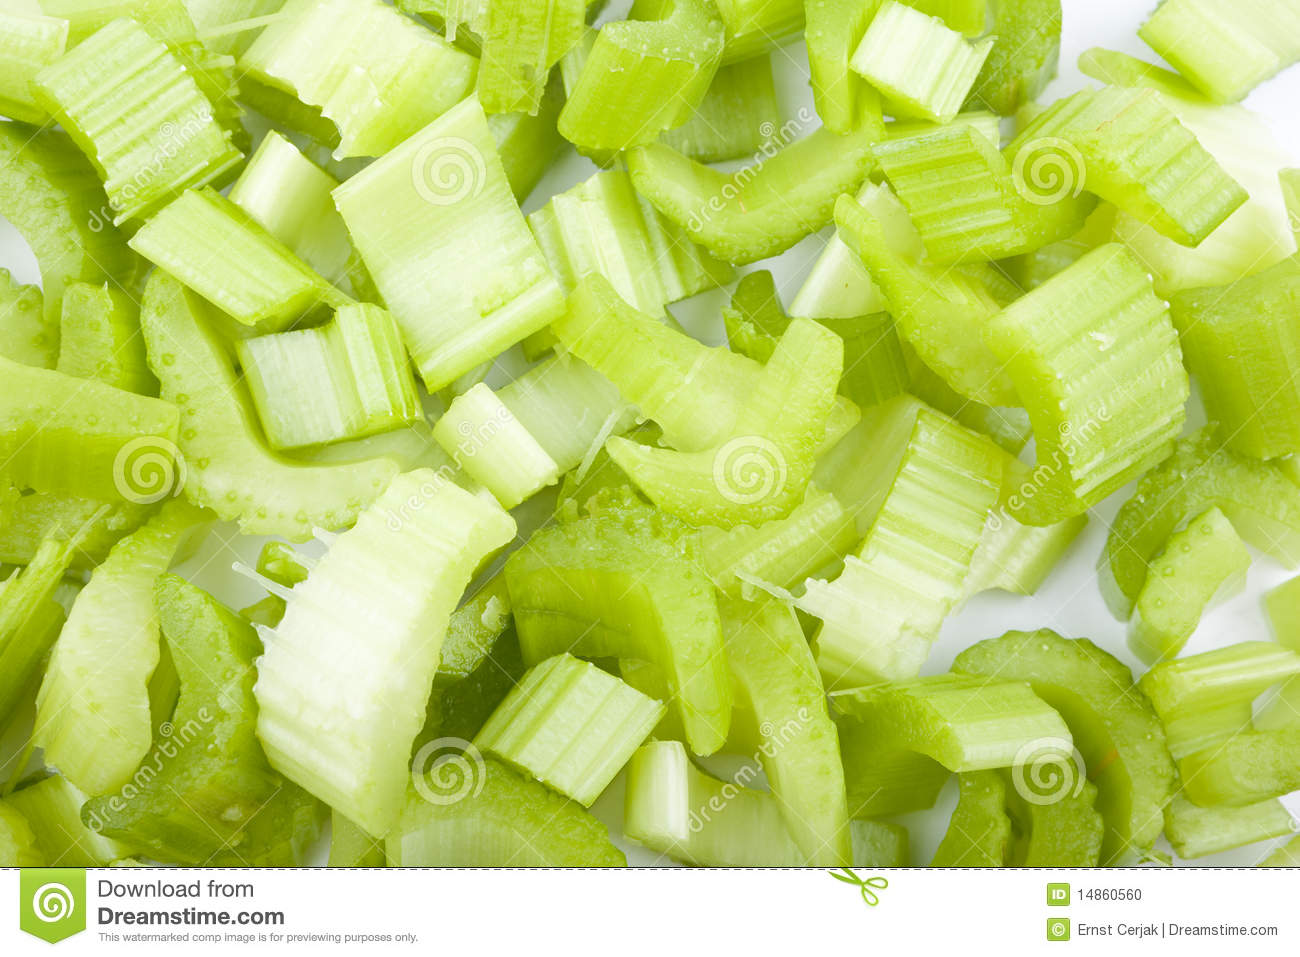 chopped celery - photo #10